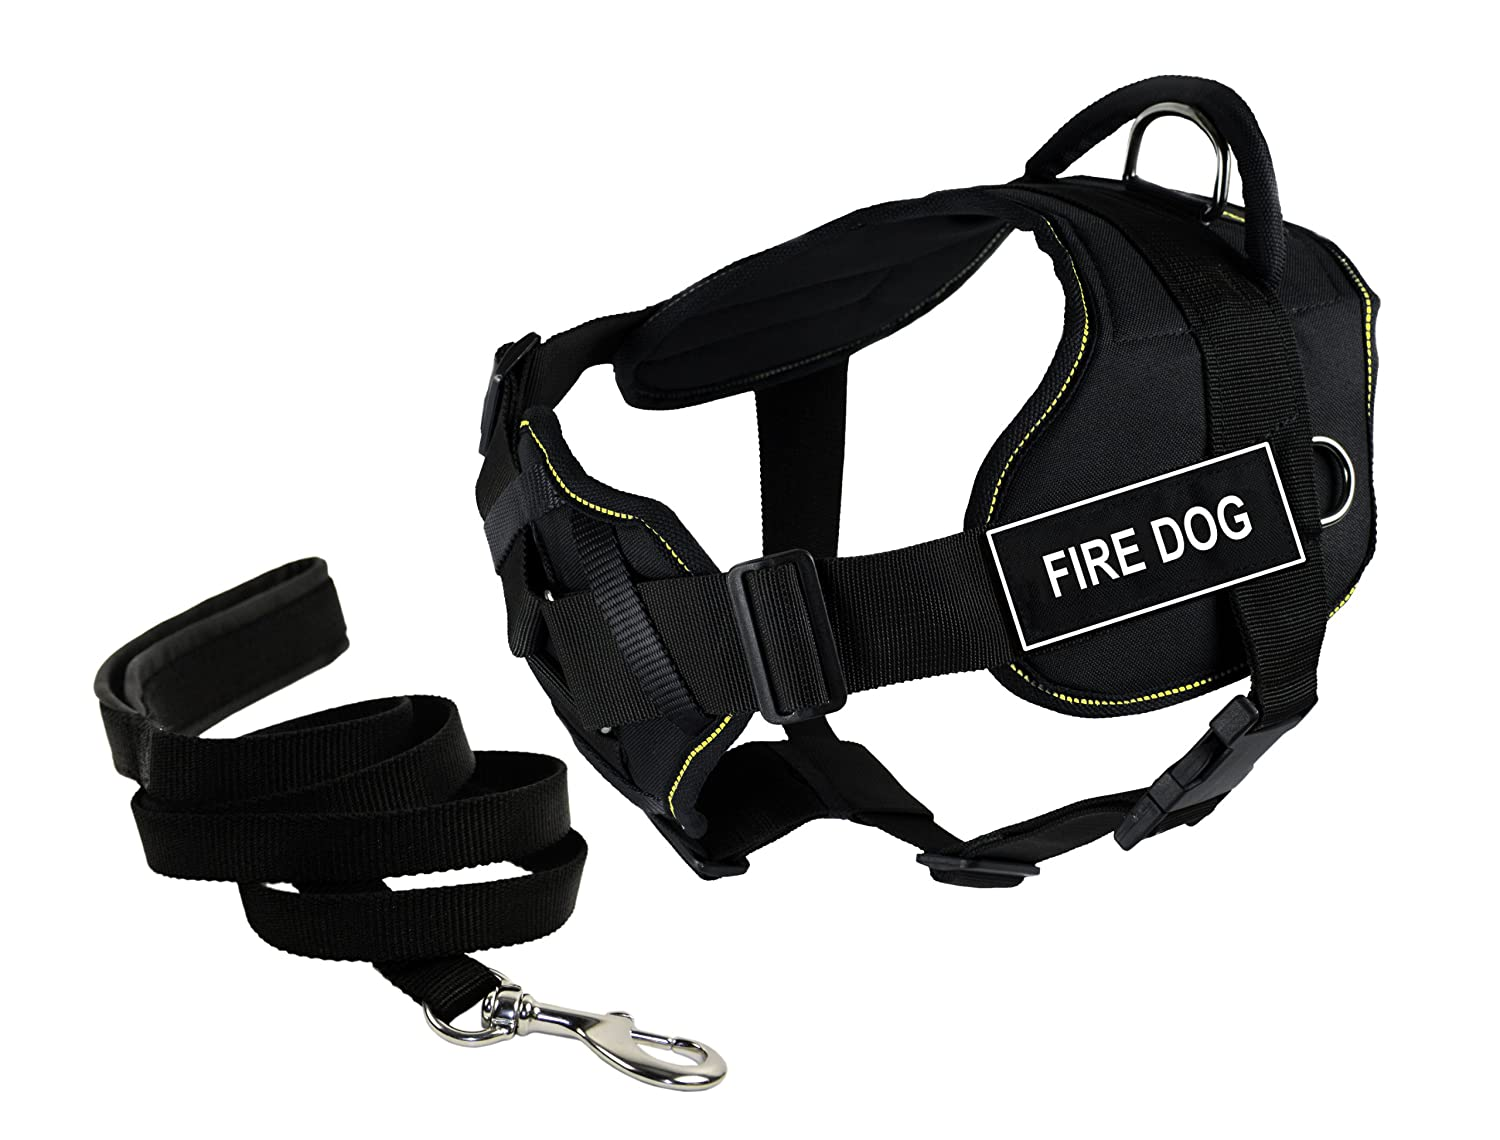 Dean & Tyler's DT Fun Chest Support FIRE DOG Harness, Large, with 6 ft Padded Puppy Leash.